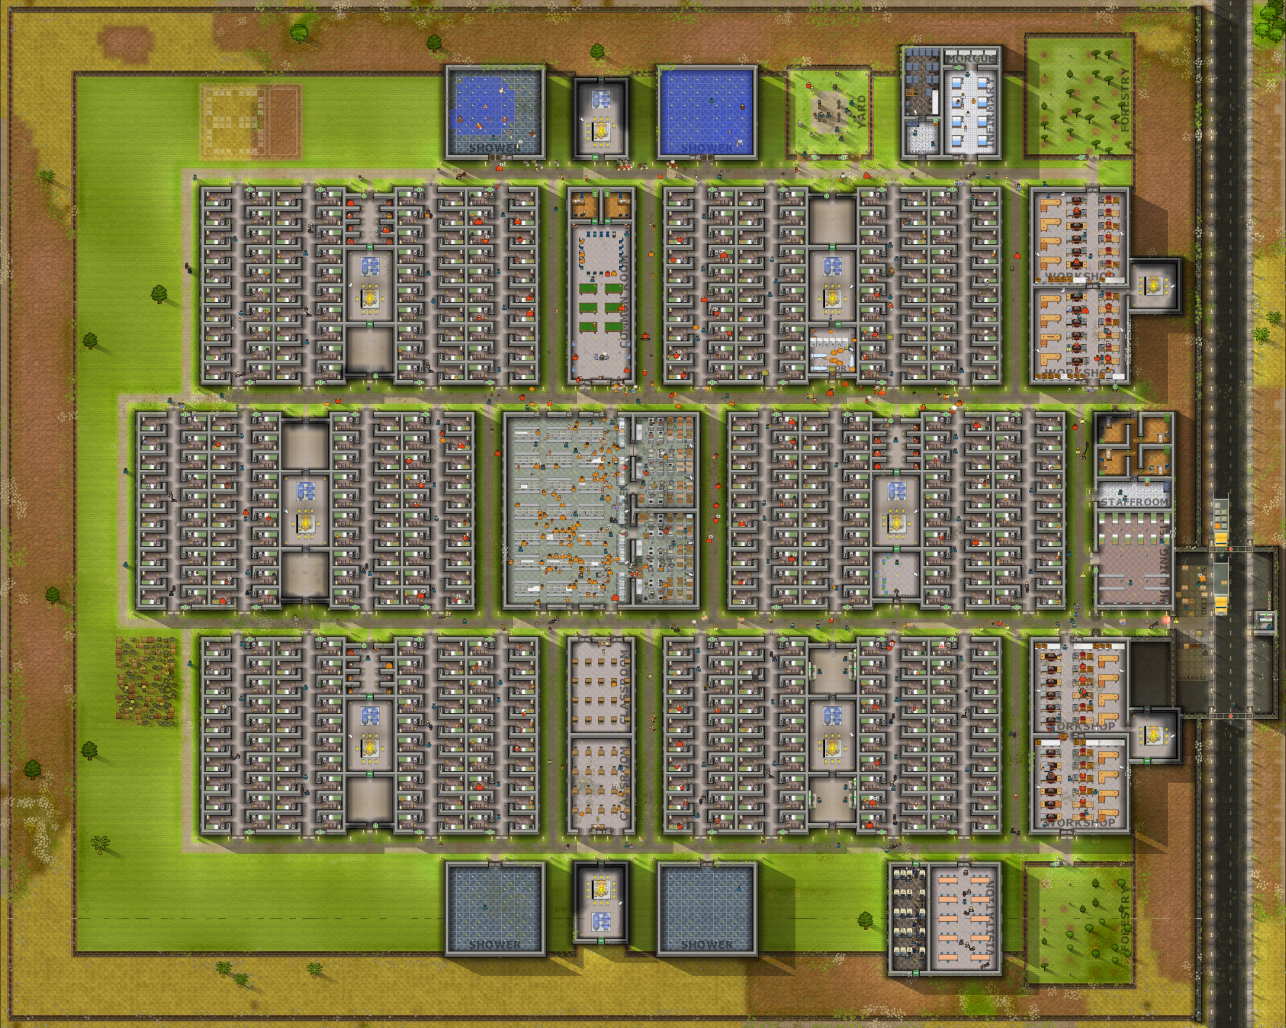 General building layout introversion The best layout